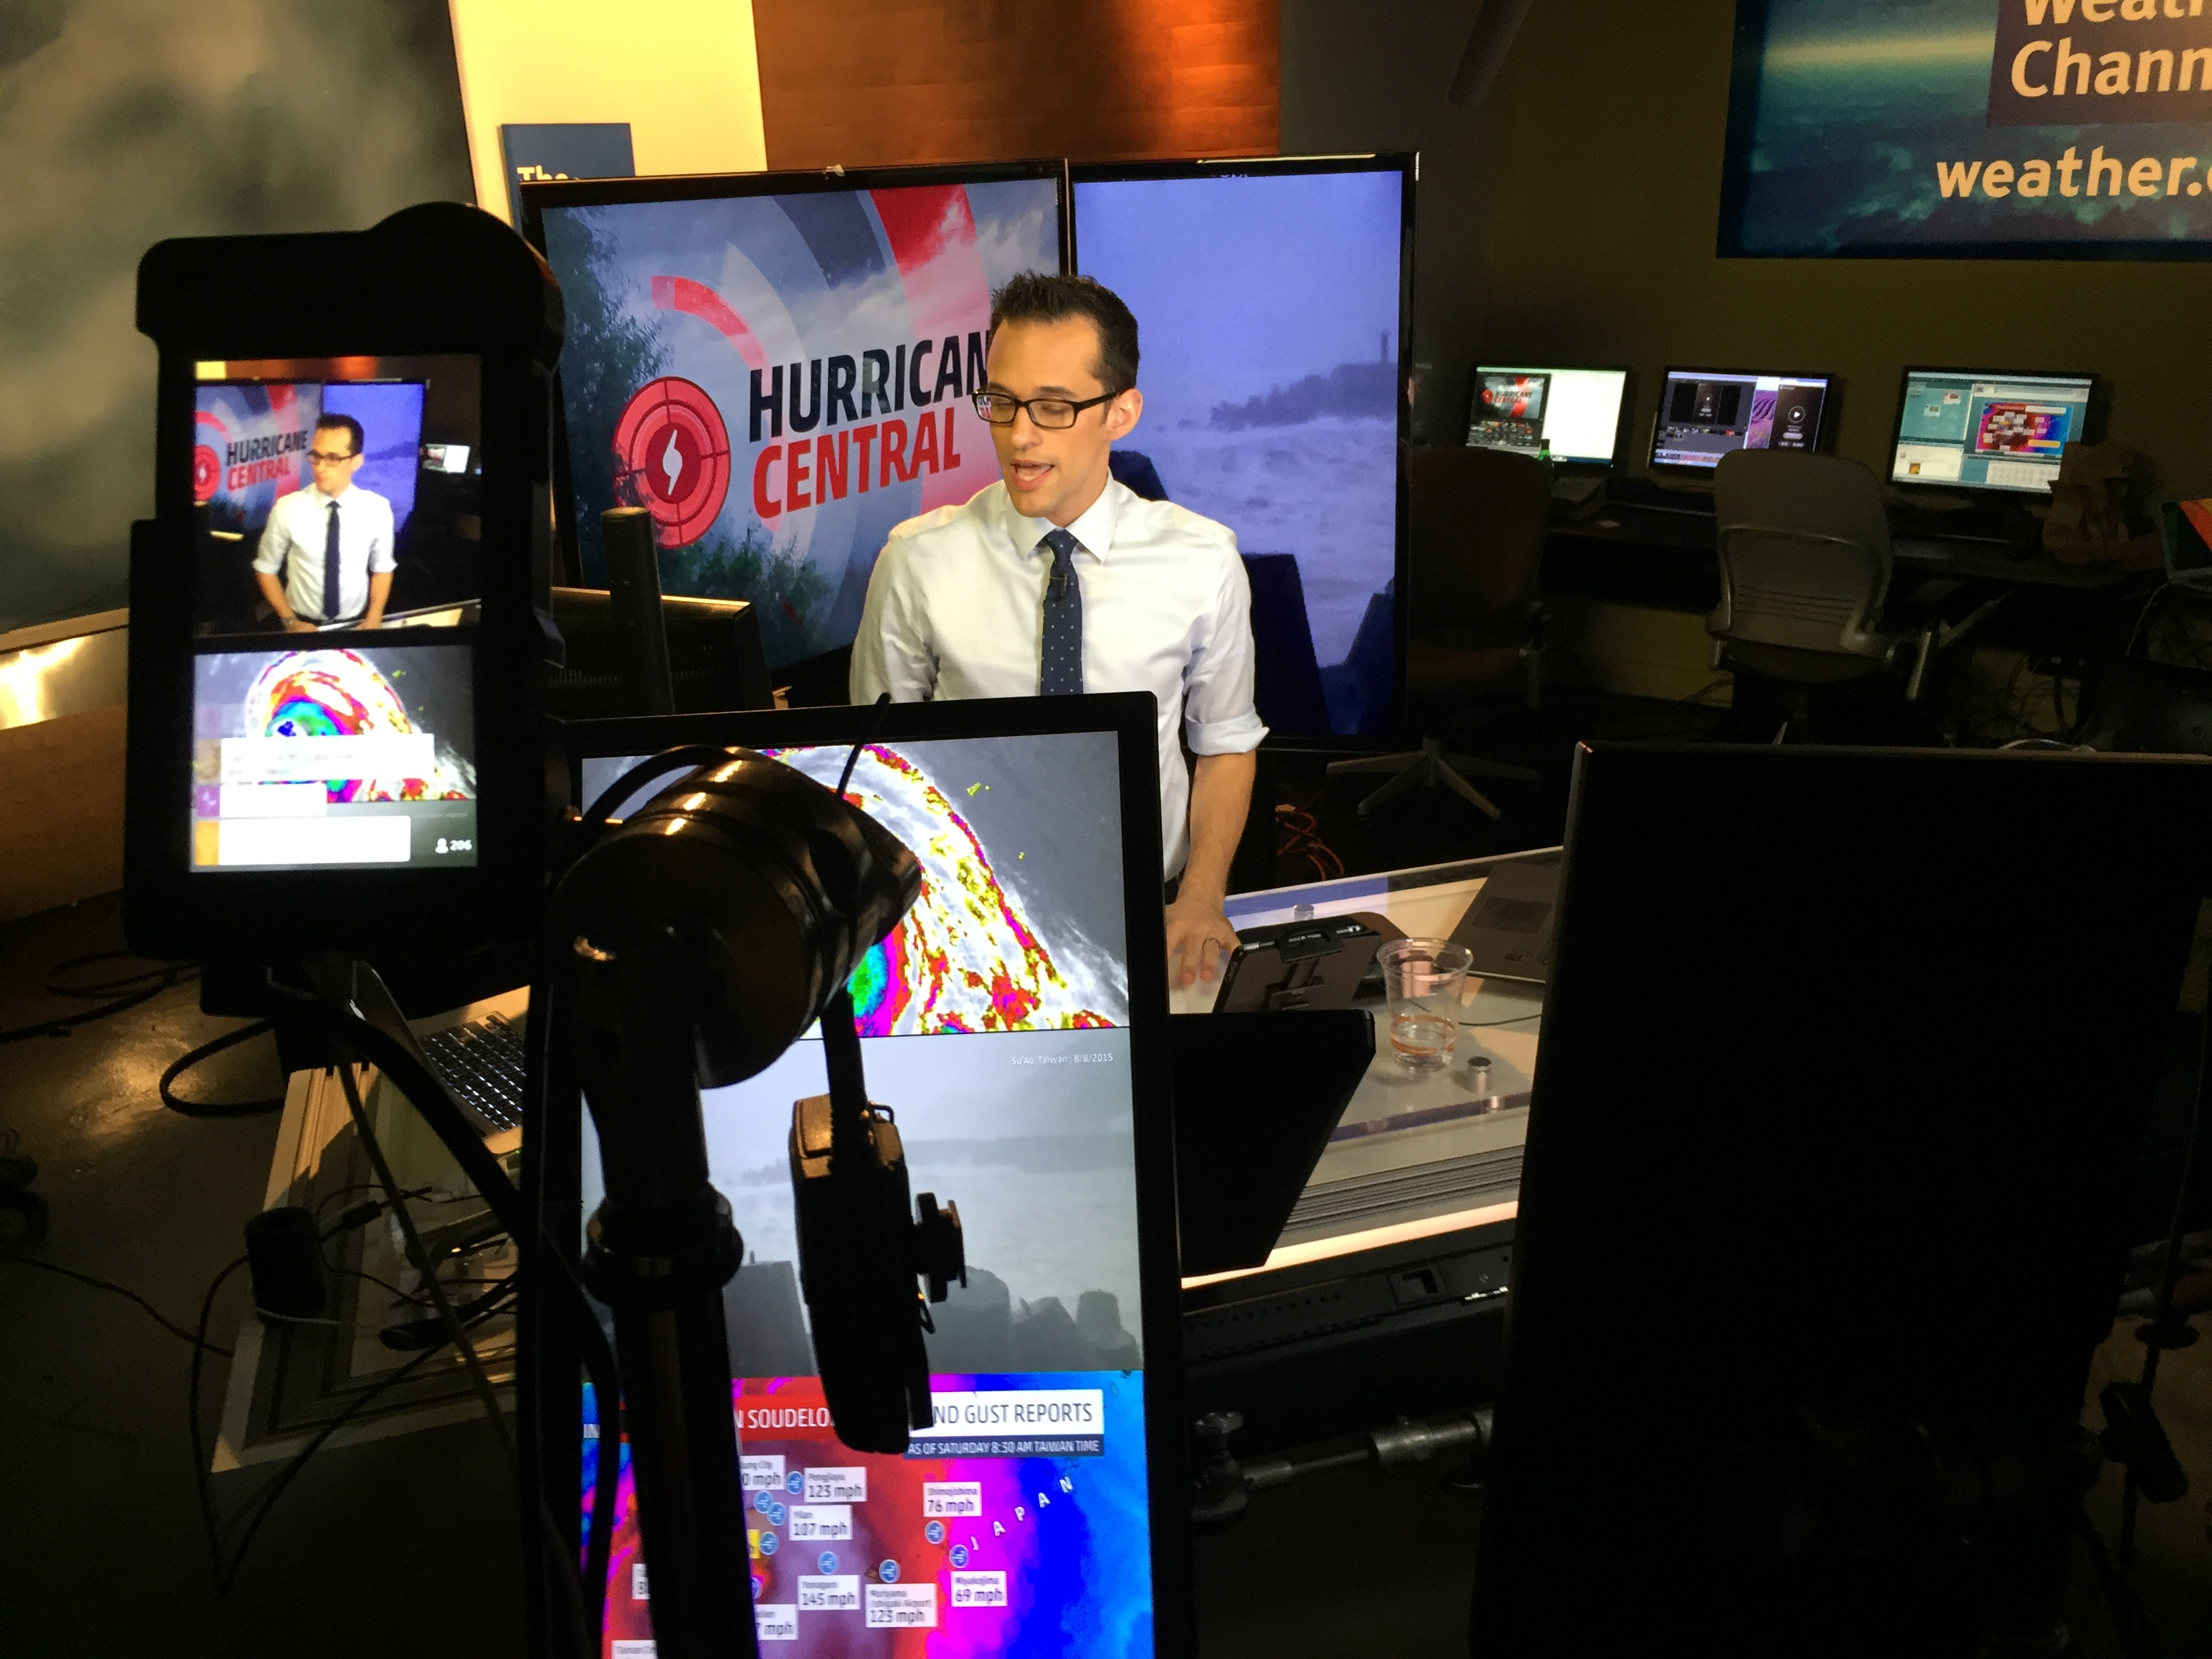 Meteorologist Ari Sarsalari Periscopes Live Using a TriCaster ME in Atanta's Studio 2A